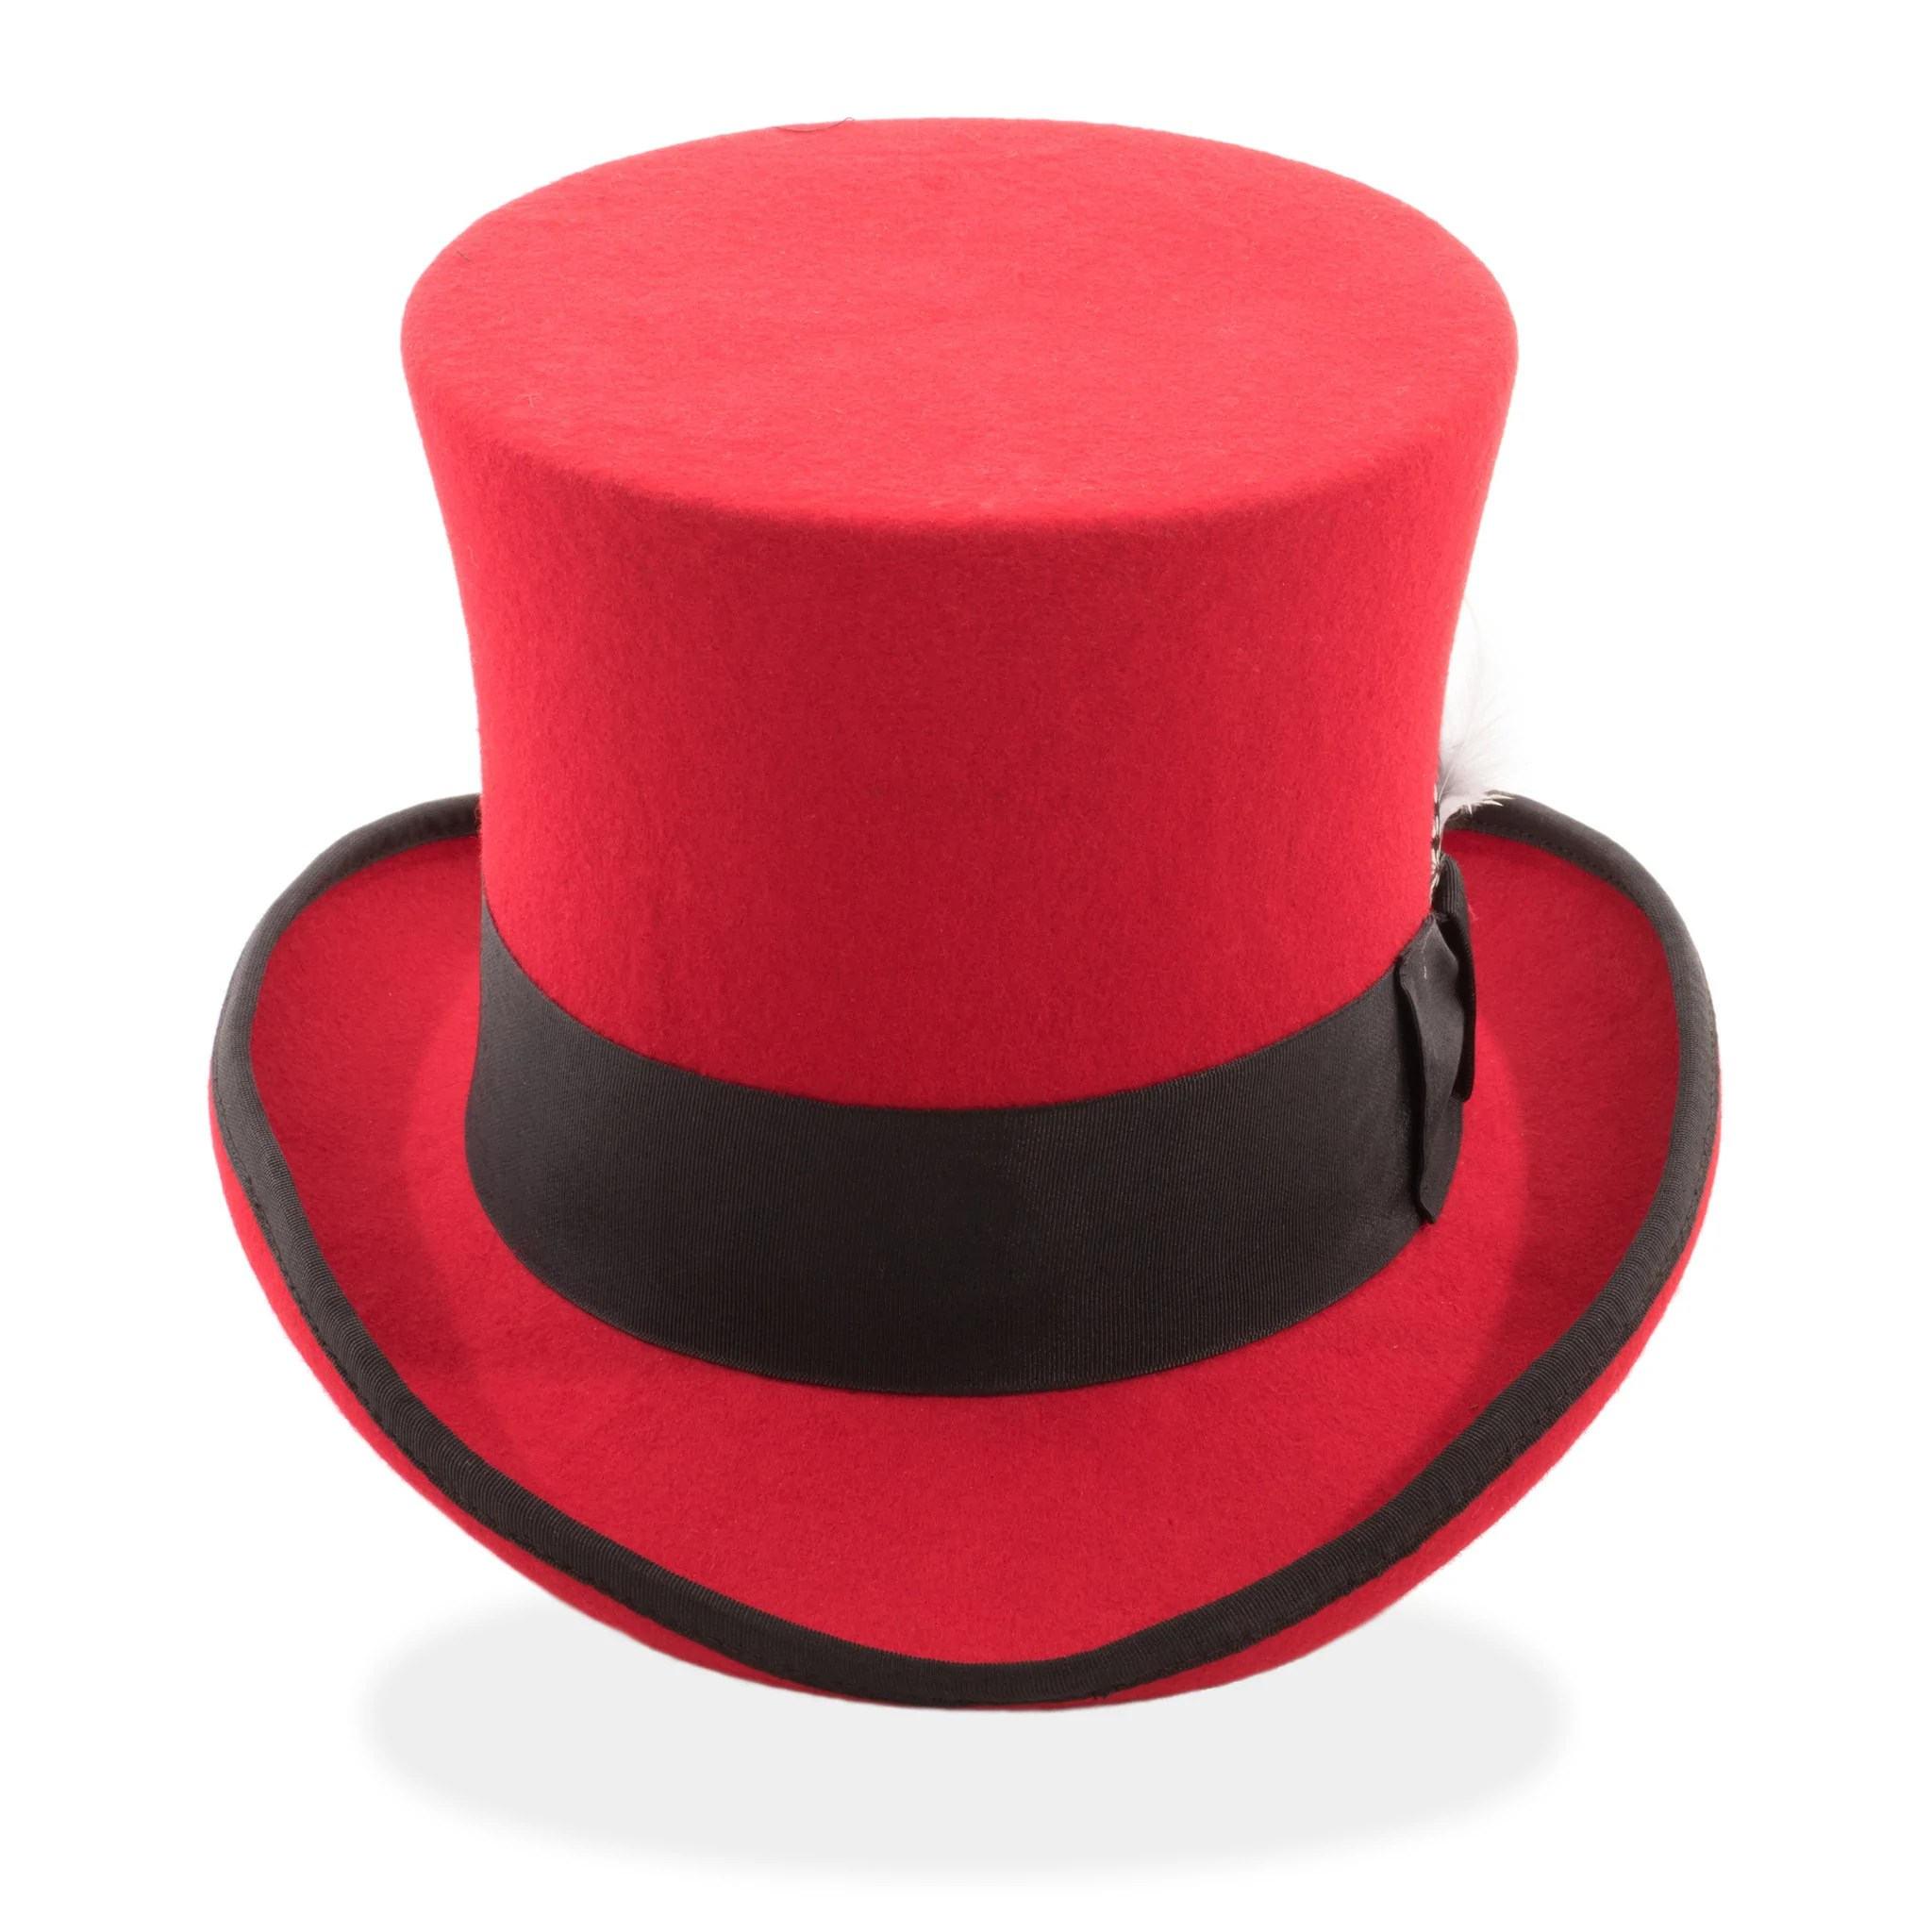 Ferrecci Premium Classic Red Black Wool Top Hat